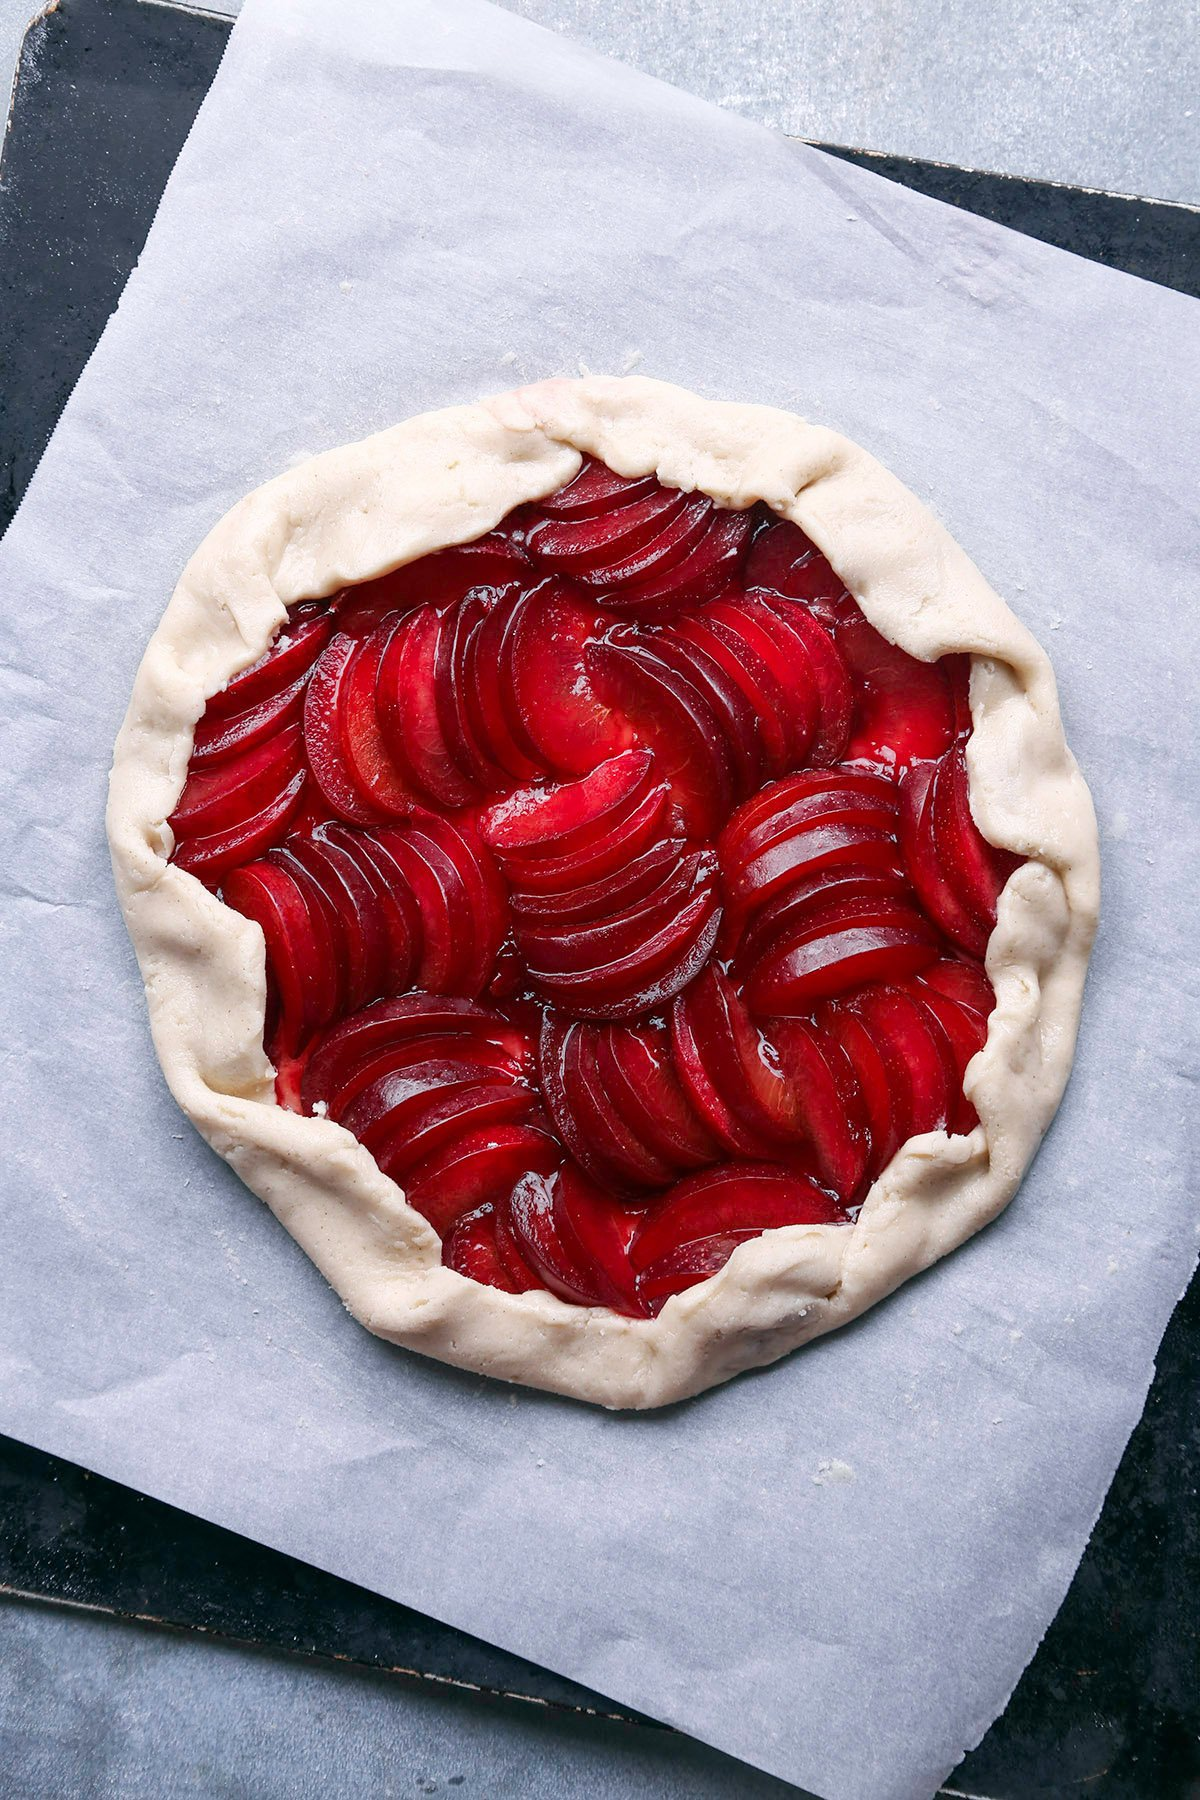 Rustic Plum Tart | Gluten Free and Vegan Friendly